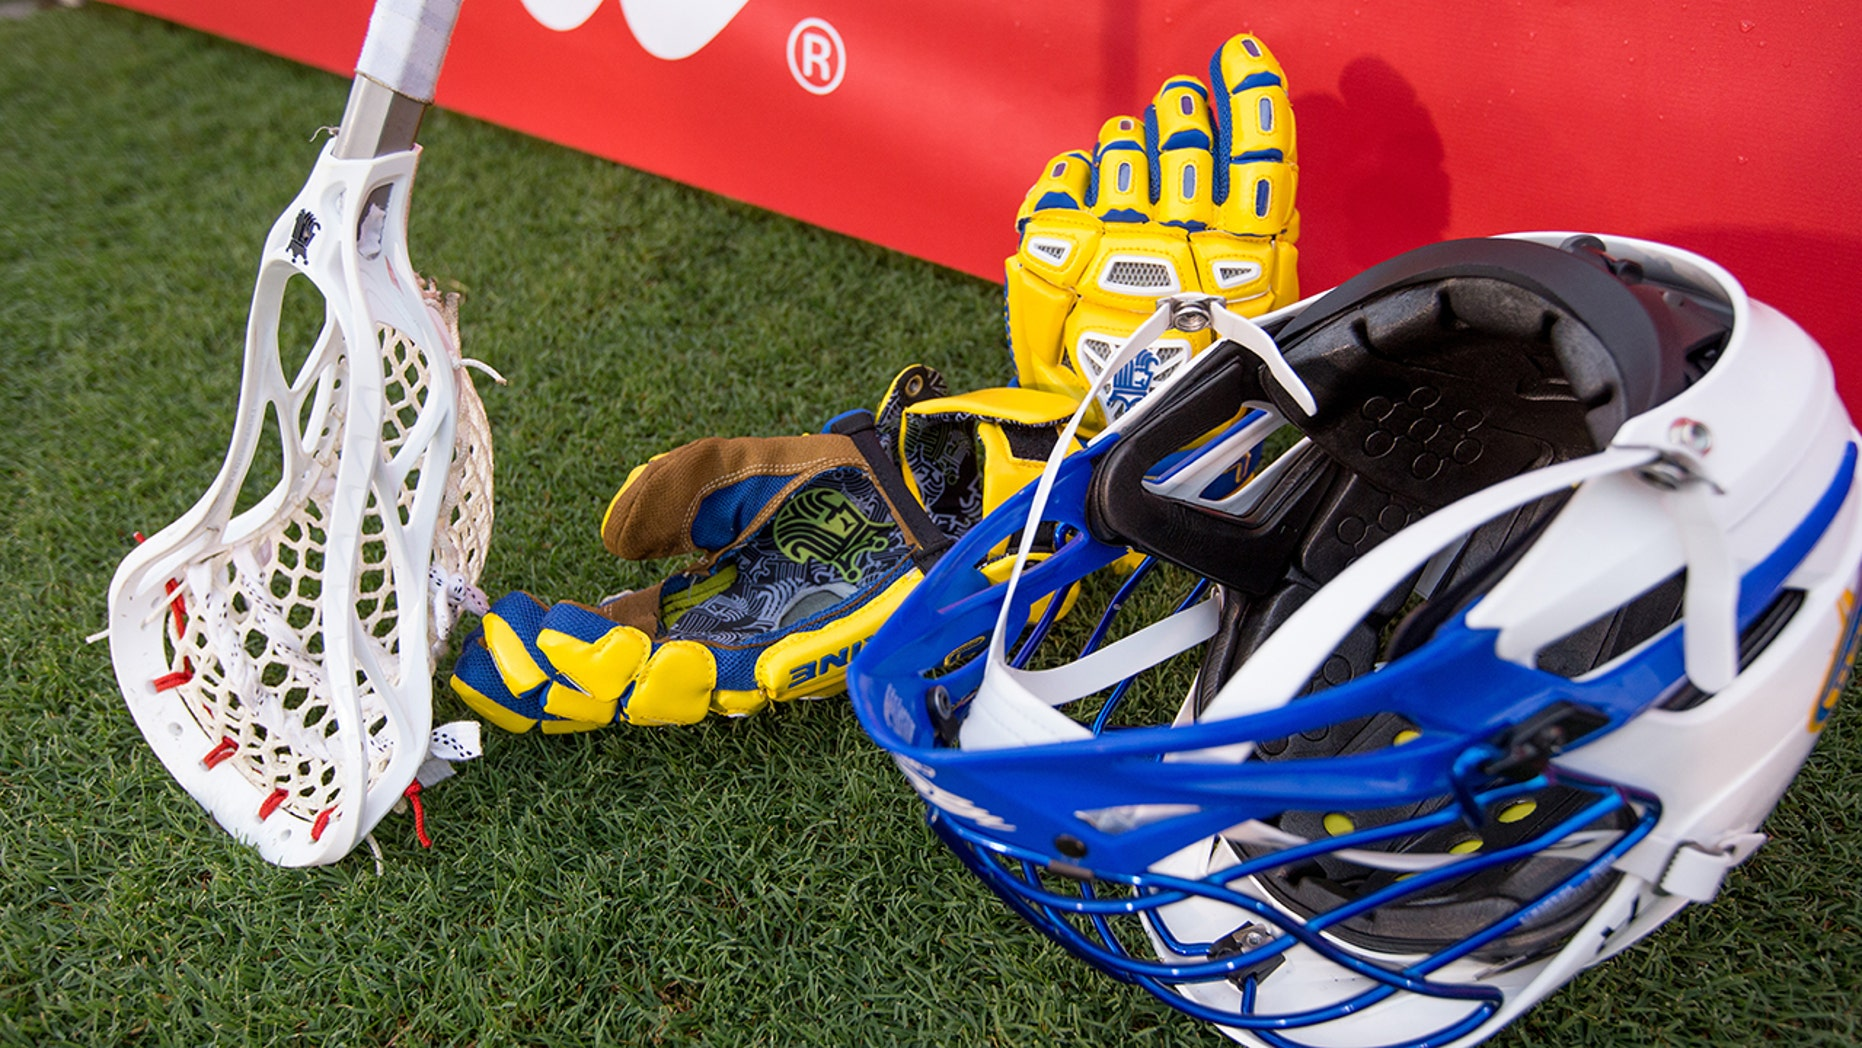 A standout college lacrosse player is having trouble finding a helmet that fits his head.